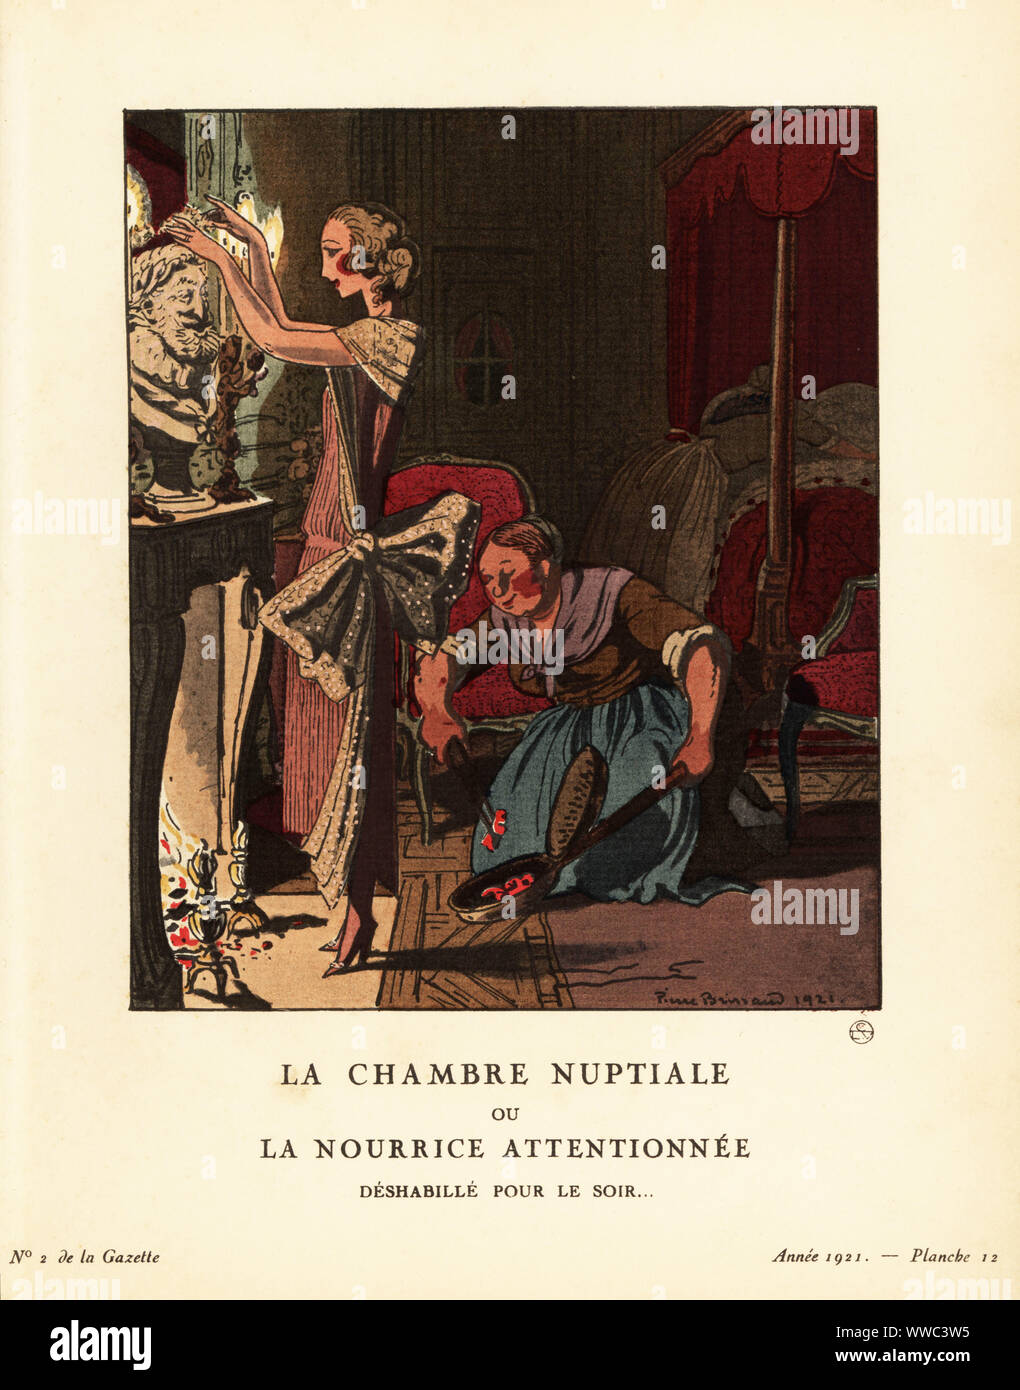 Woman in dress of pleated crepe georgette with gold lace in front of a fireplace on her wedding night. A maid puts coals in a bed warmer. La chambre nuptiale ou la nourrice attentionnee. Deshabille pour le soir. Deshabille de crepe georgette plisse et dentelle d'or formant echarpe. Plate 12, Issue 2, 1921. Handcoloured pochoir lithograph by Pierre Brissaud from Lucien Vogel's Le Bon Genre: 100 Plates from Gazette du Bon Ton, Brentano's, Paris, 1922. Stock Photo